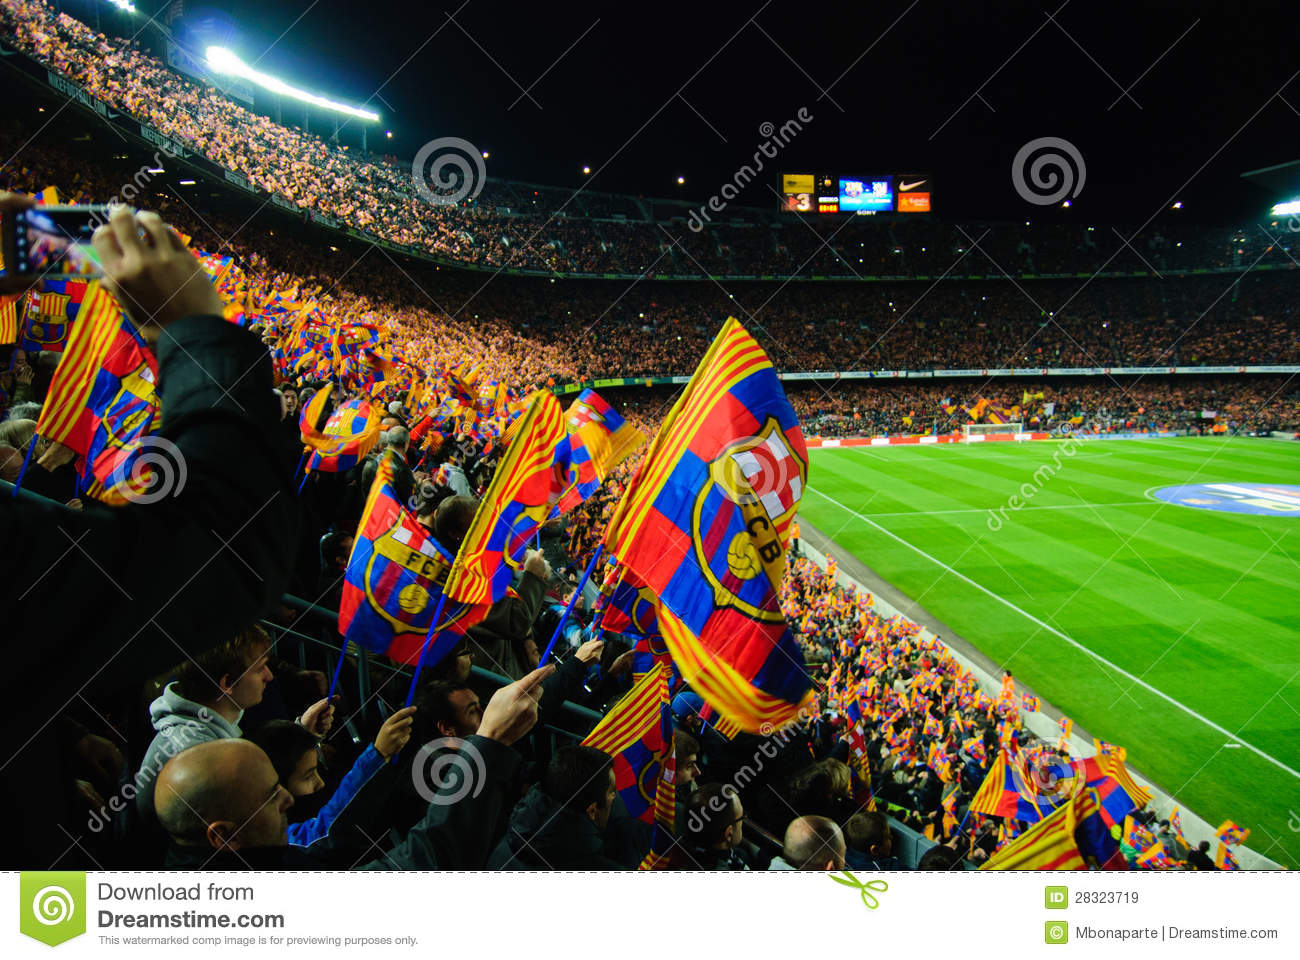 Wallpaper Barcelona Fc 3d Fc Barcelona Football Match Stands Scenery With Flags